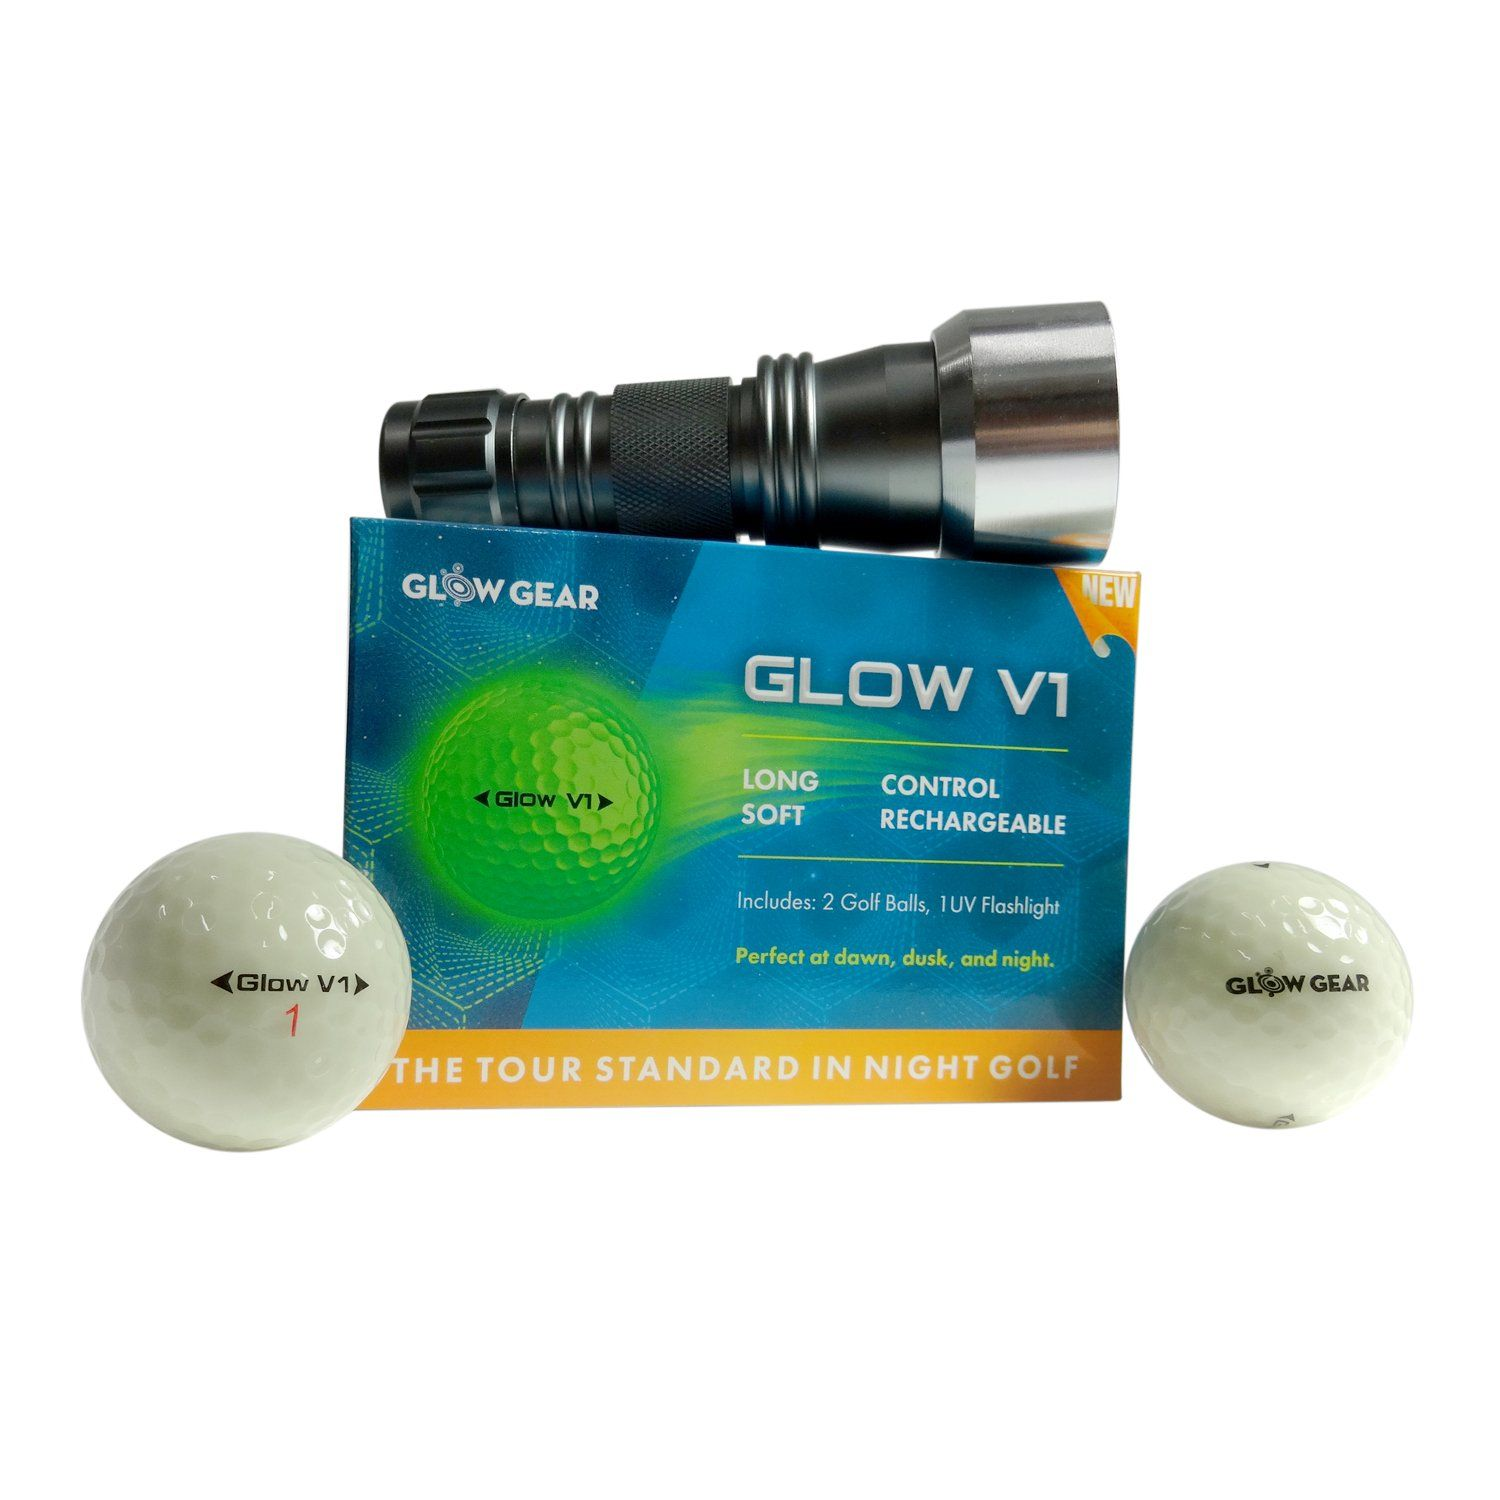 Golf Clubs Glowv2 Night Golf Balls 2pack Best Hitting Ultra Bright Glow Golf Ball Compression Core And Ureth Golf Ball Glow Gear Online Workouts